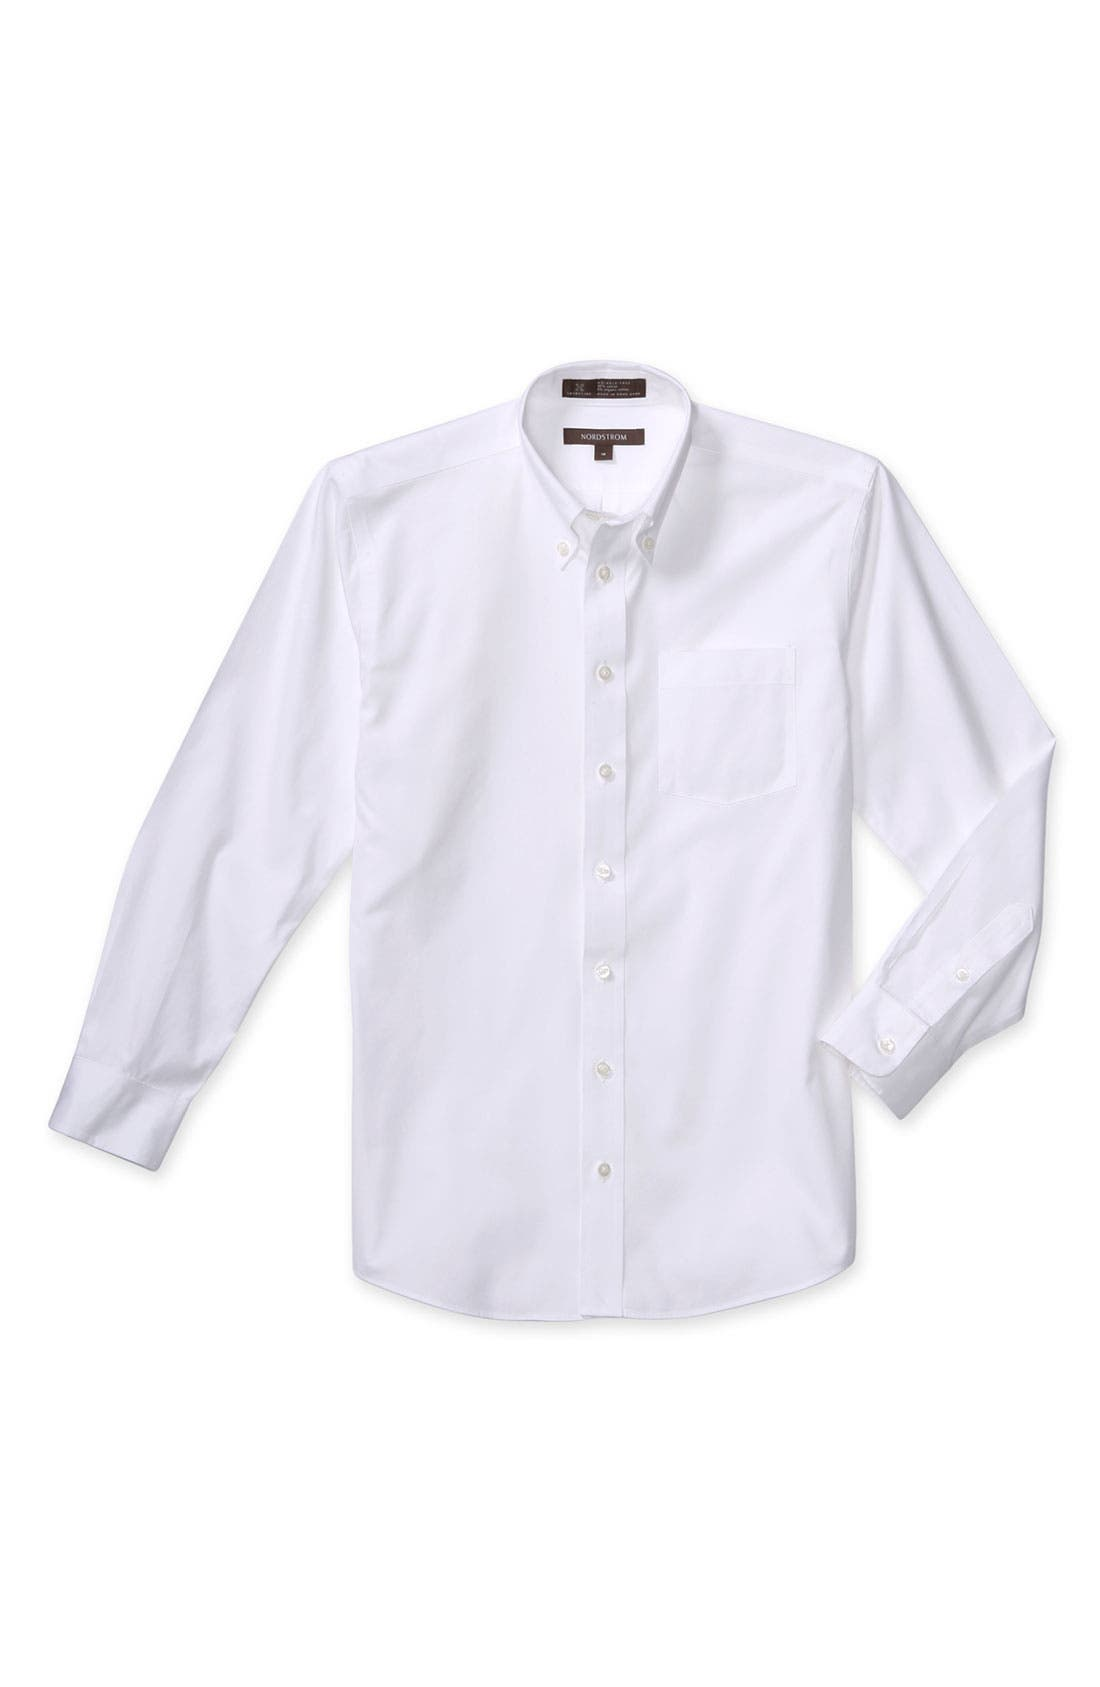 Main Image - Nordstrom Smartcare™ Long Sleeve Oxford Shirt (Big Boys)